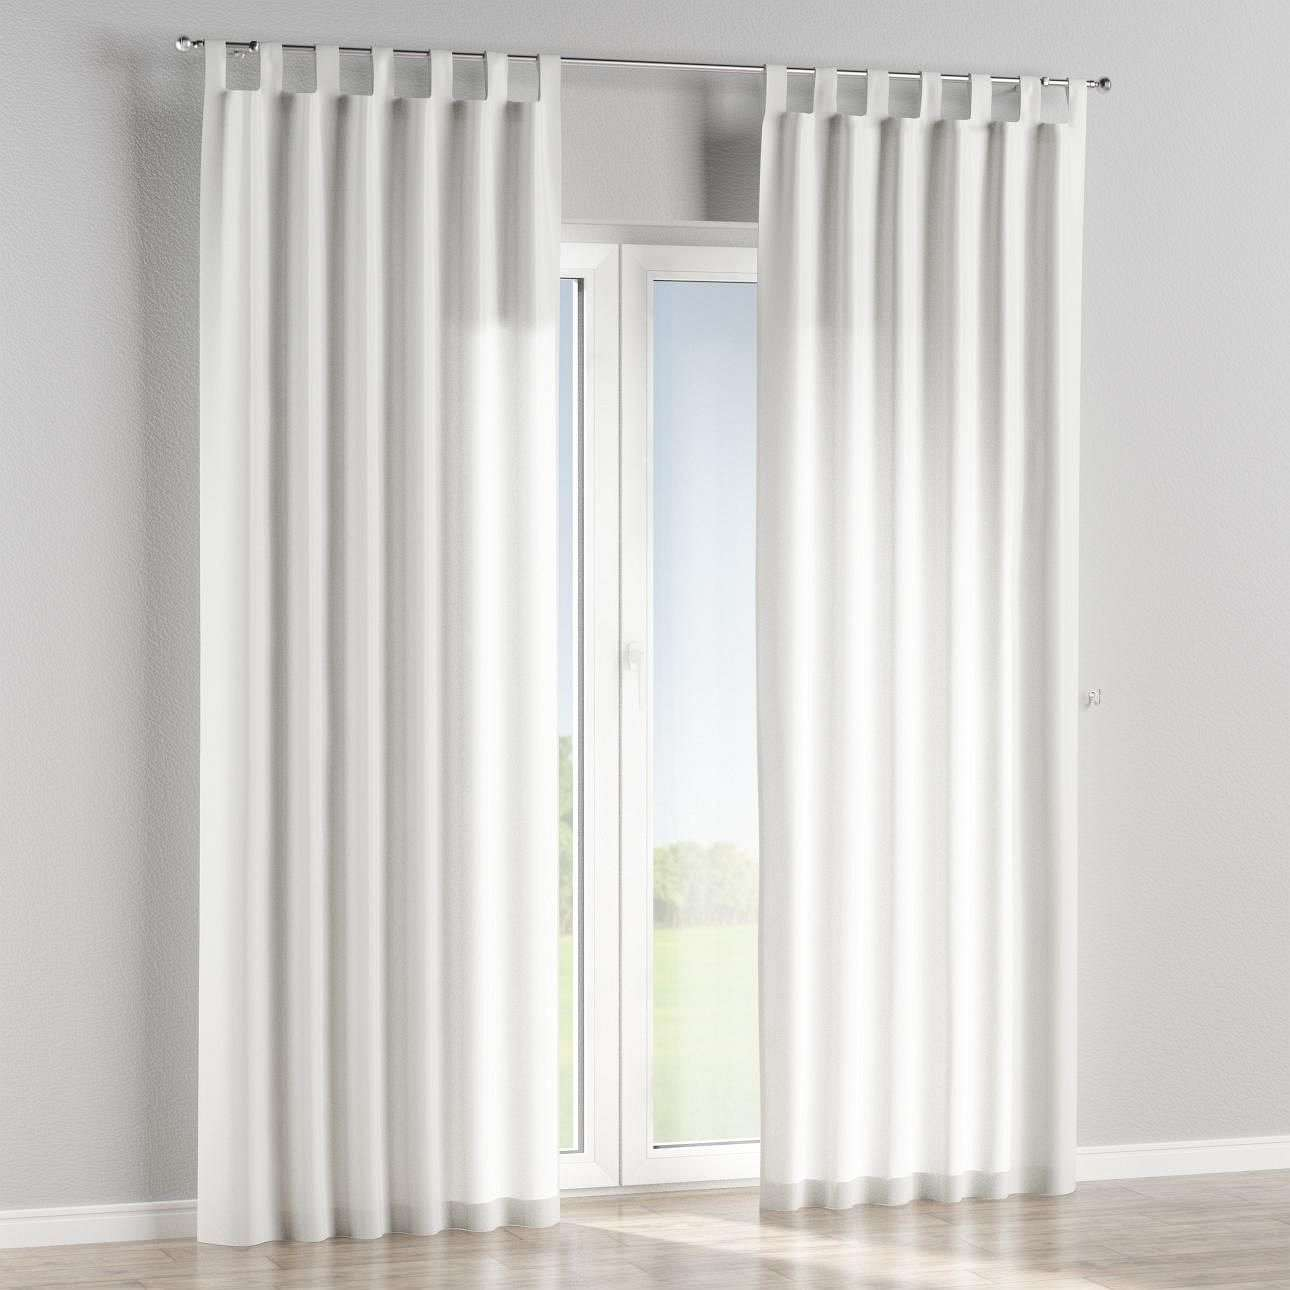 Tab top lined curtains in collection Marina, fabric: 140-60